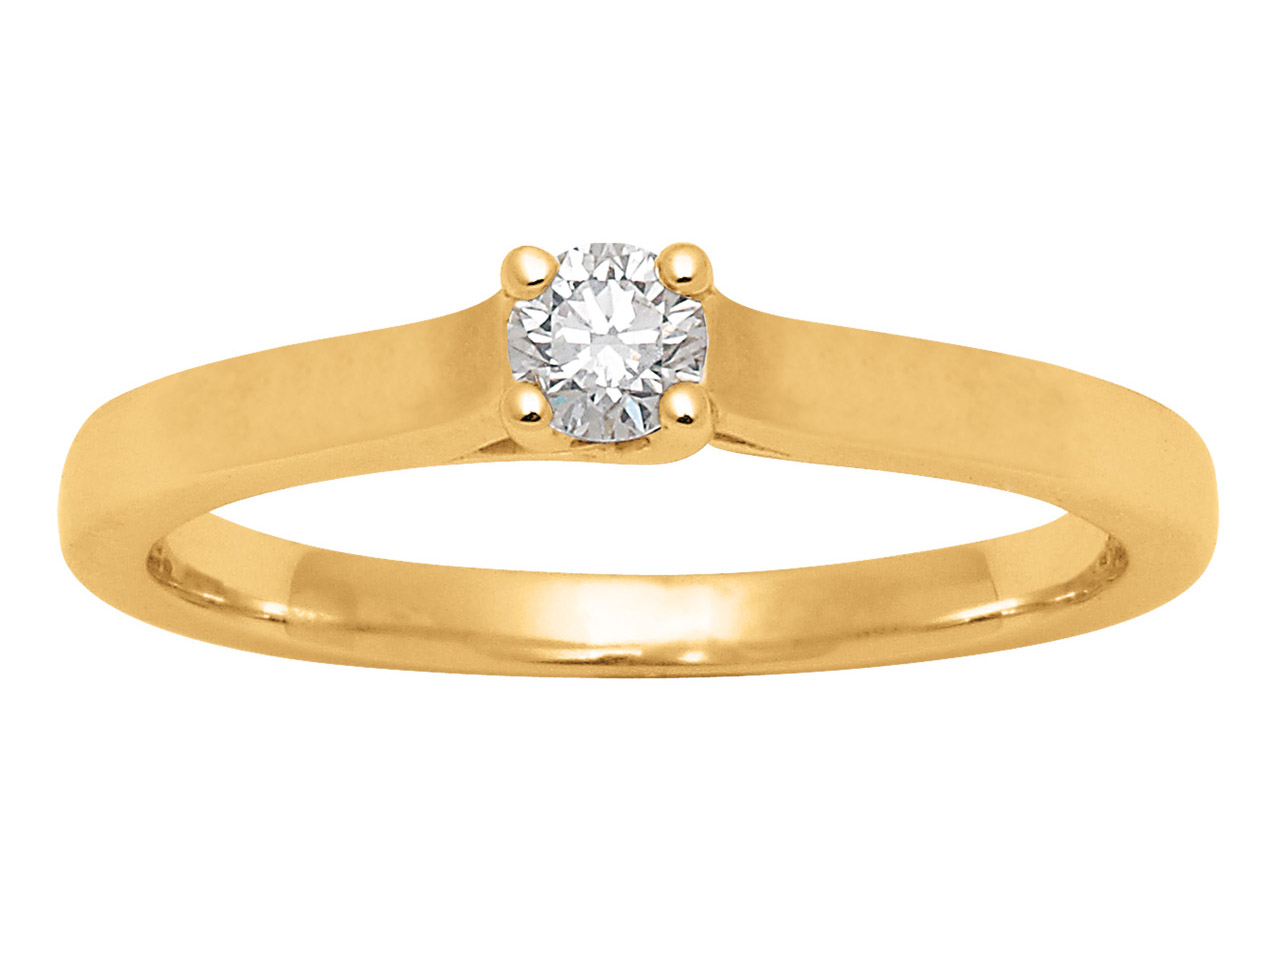 Solitaire Or jaune 18 k, Dts 0,15 ct, doigt 56